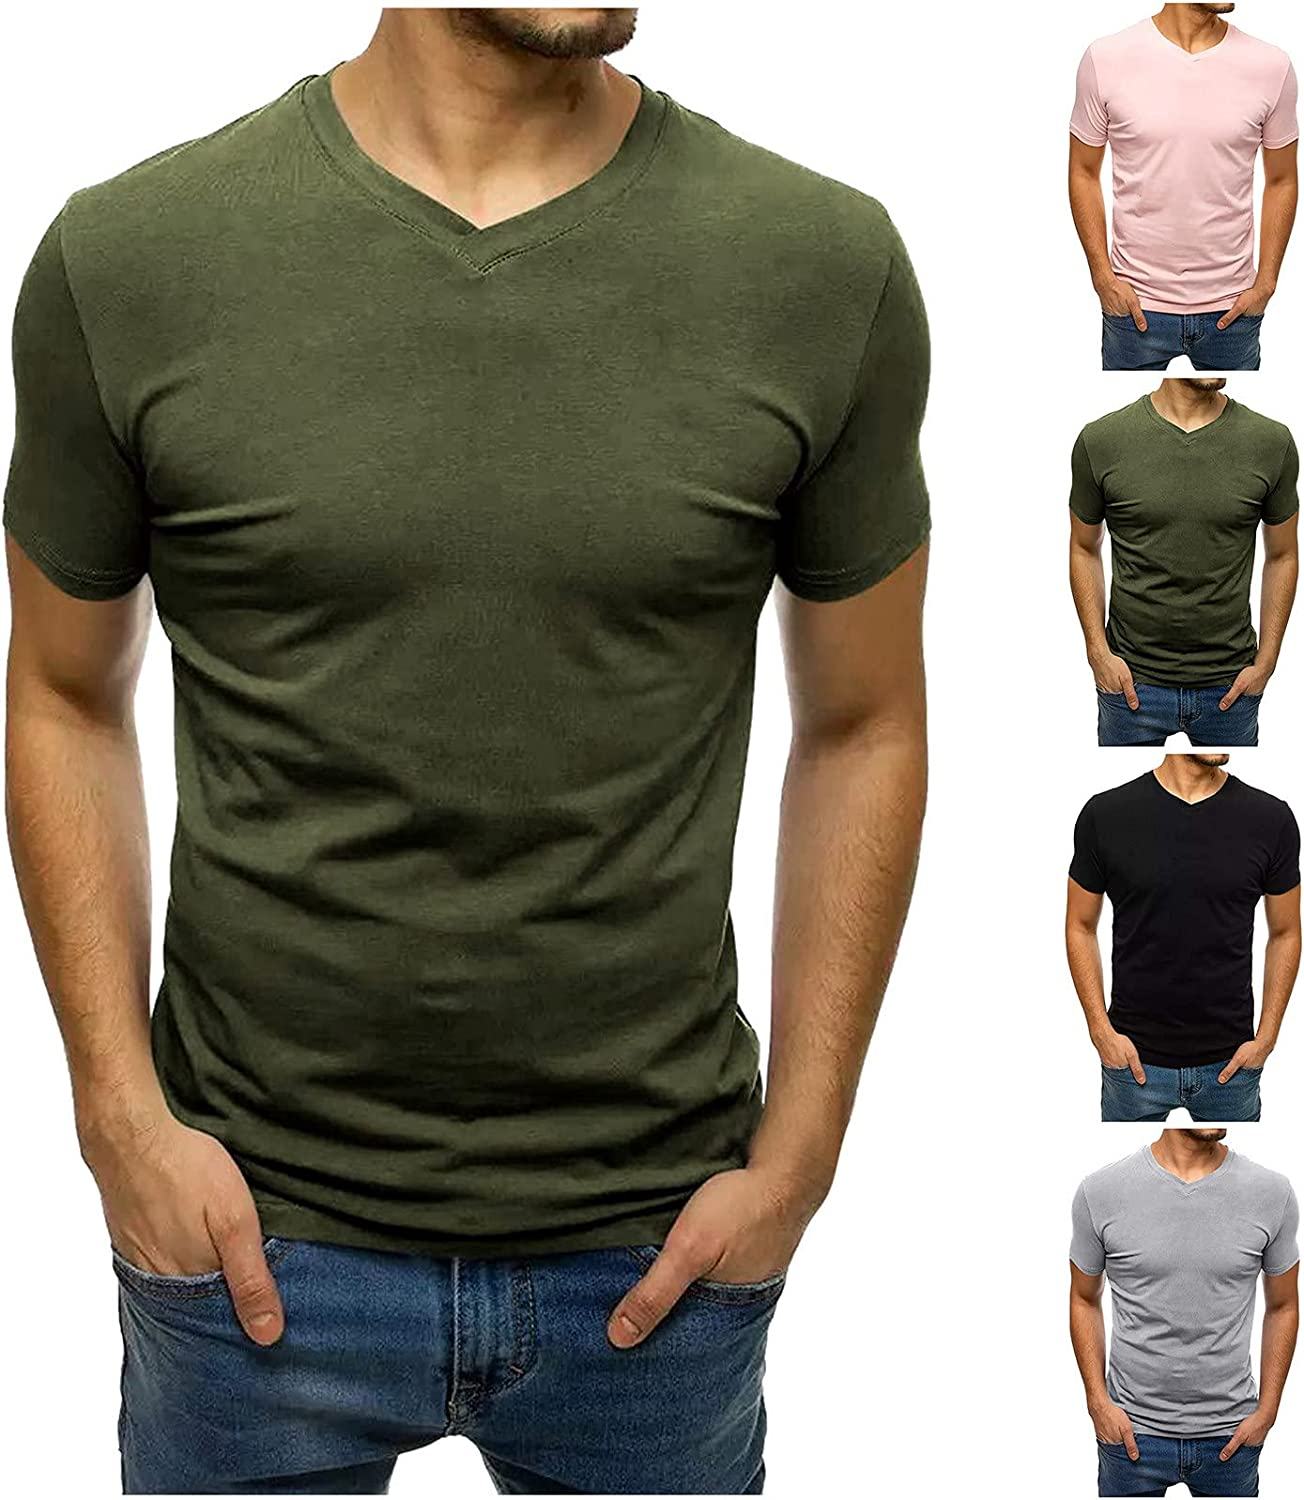 Lovor Men's Eco Element Tee, Slim-Fit,Swift Short Sleeve   Workout Shirts for Men with Anti-Odor, Moisture Wicking Technology